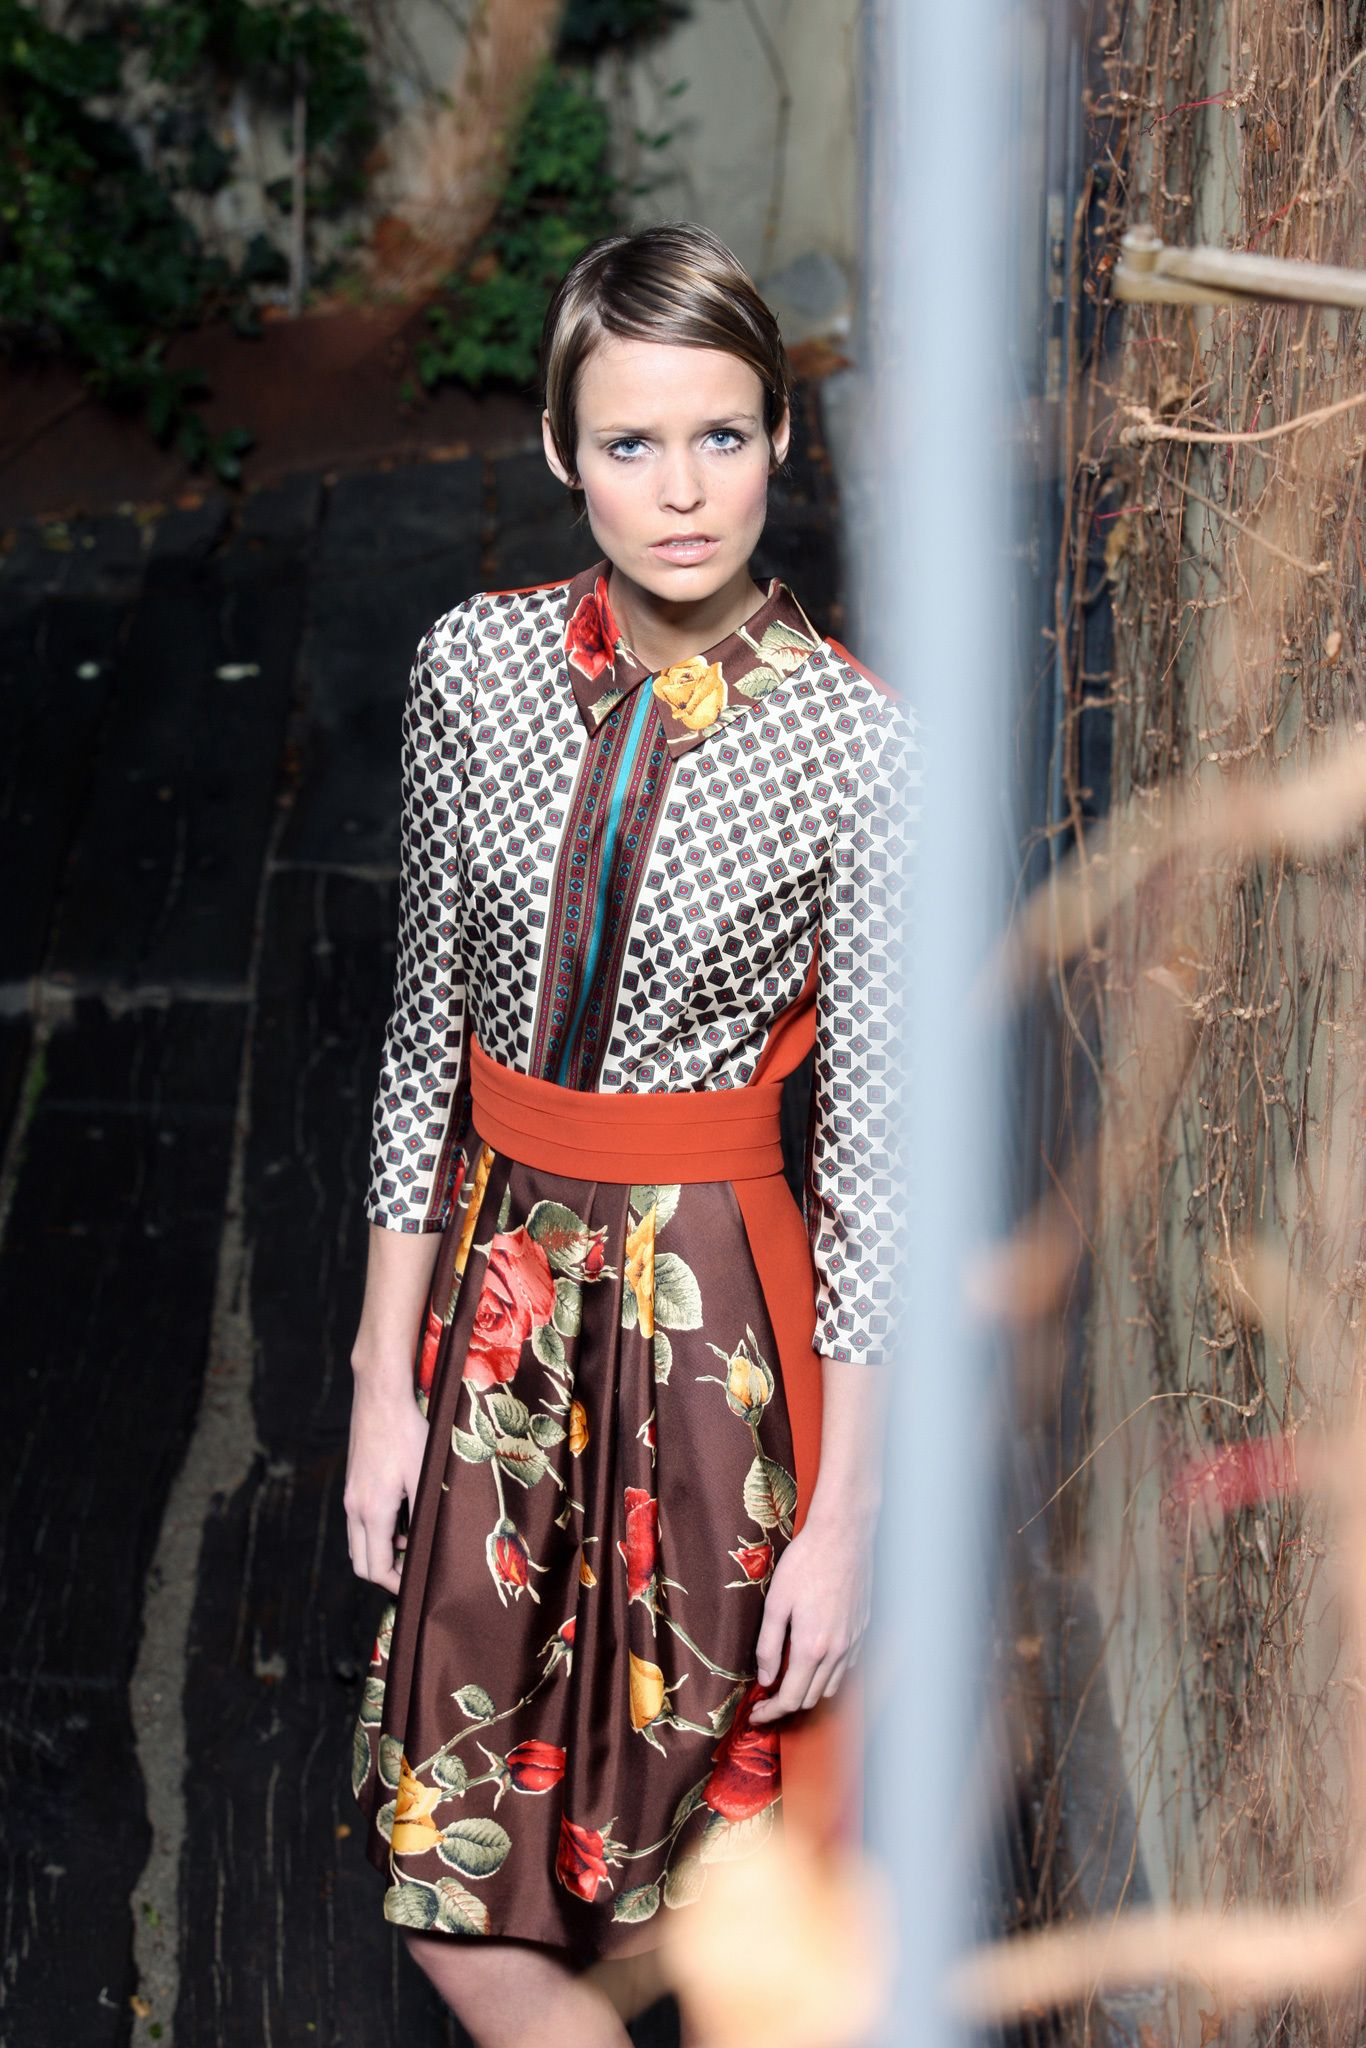 Antonio-Marras-Pre-Autumn-2013-2014-1.jpg (1366×2048)